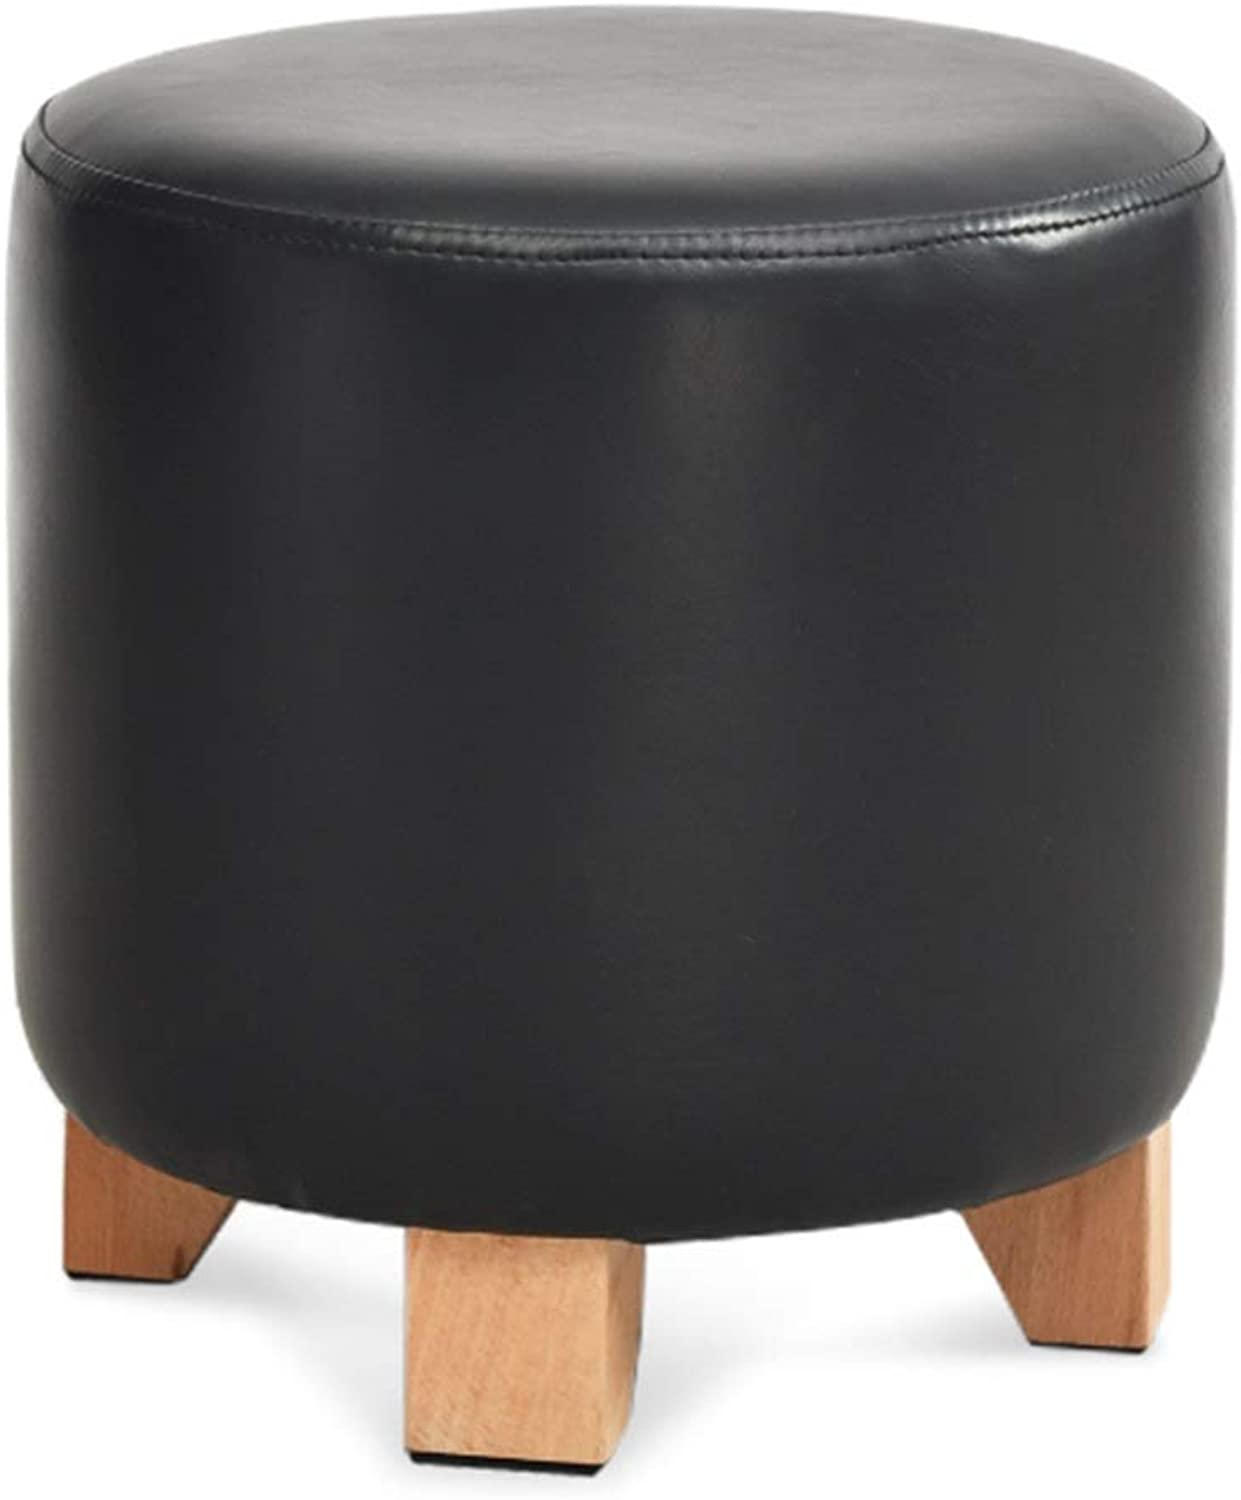 Pouffes and Footstools Home Cylindrical State Seat Low Stool Comfortable Soft PU Solid Wood, 3 colors ( color   Black , Size   29x29x29cm )